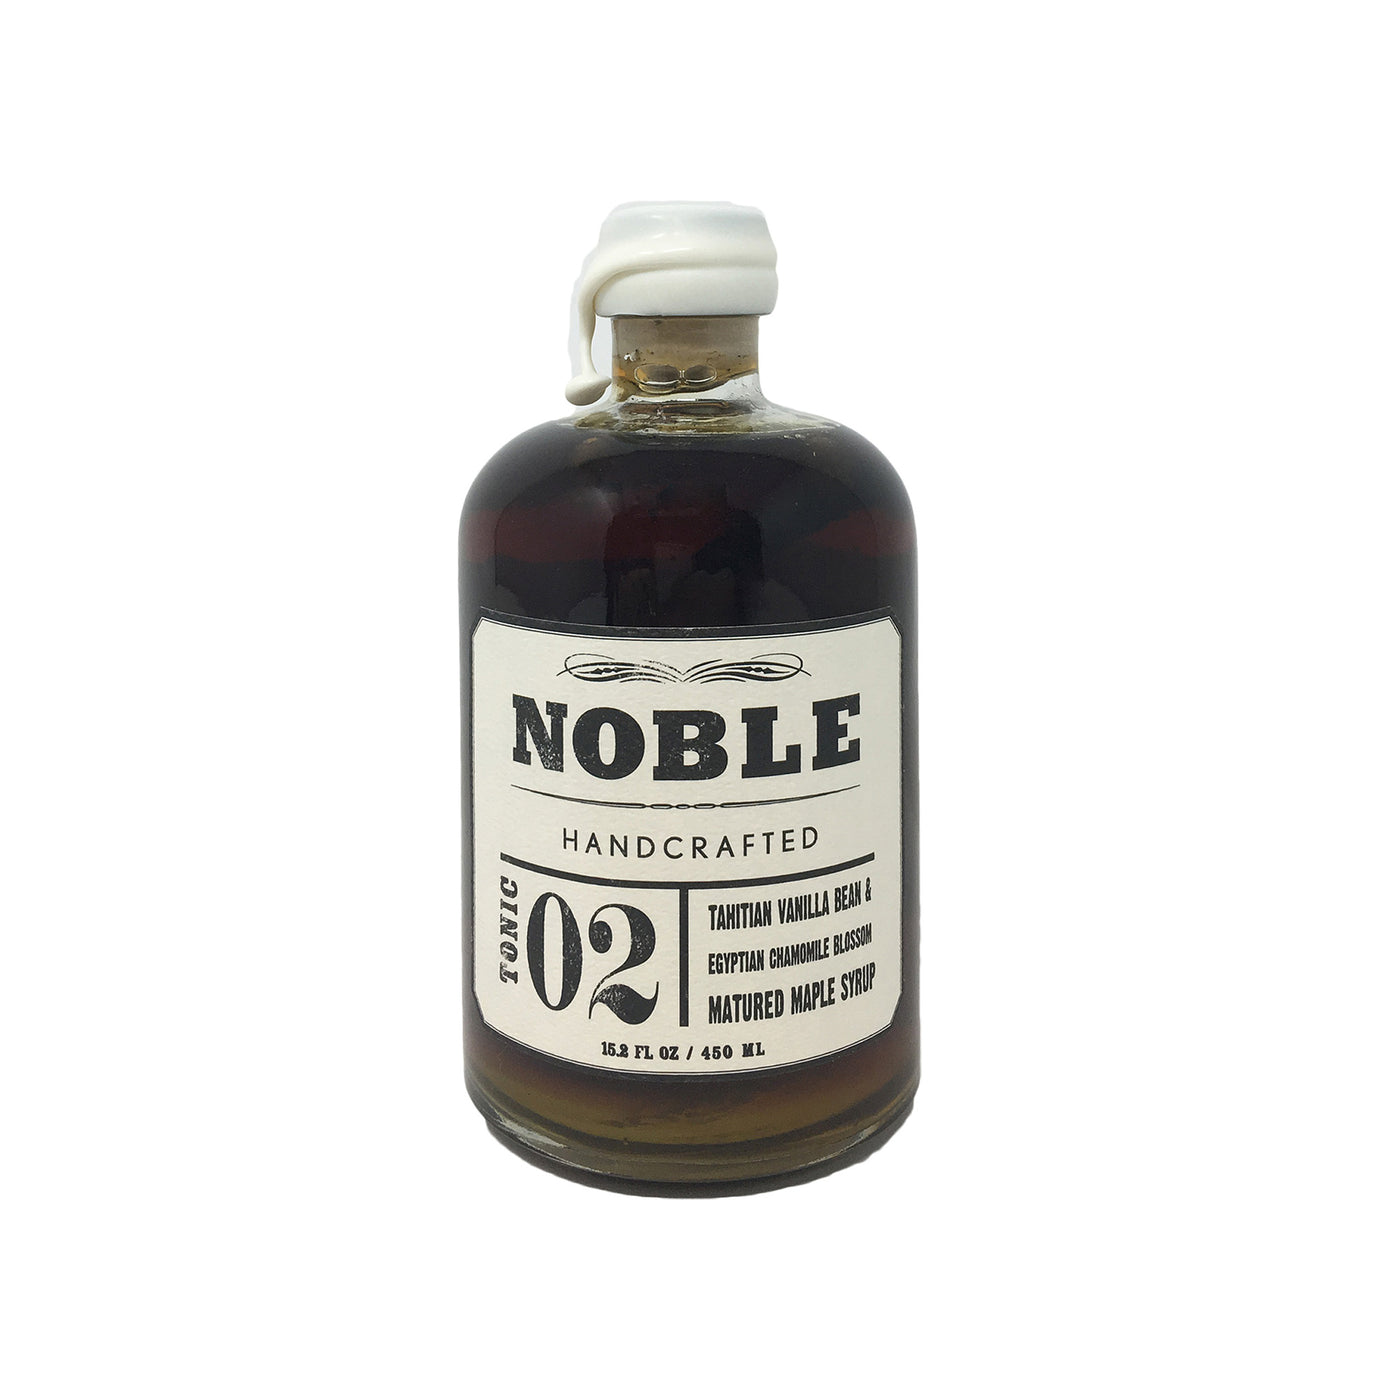 Noble Tonic 02: Tahitian Vanilla Bean and Egyptian Chamomile Blossom Maple Syrup, 15.2 fl oz